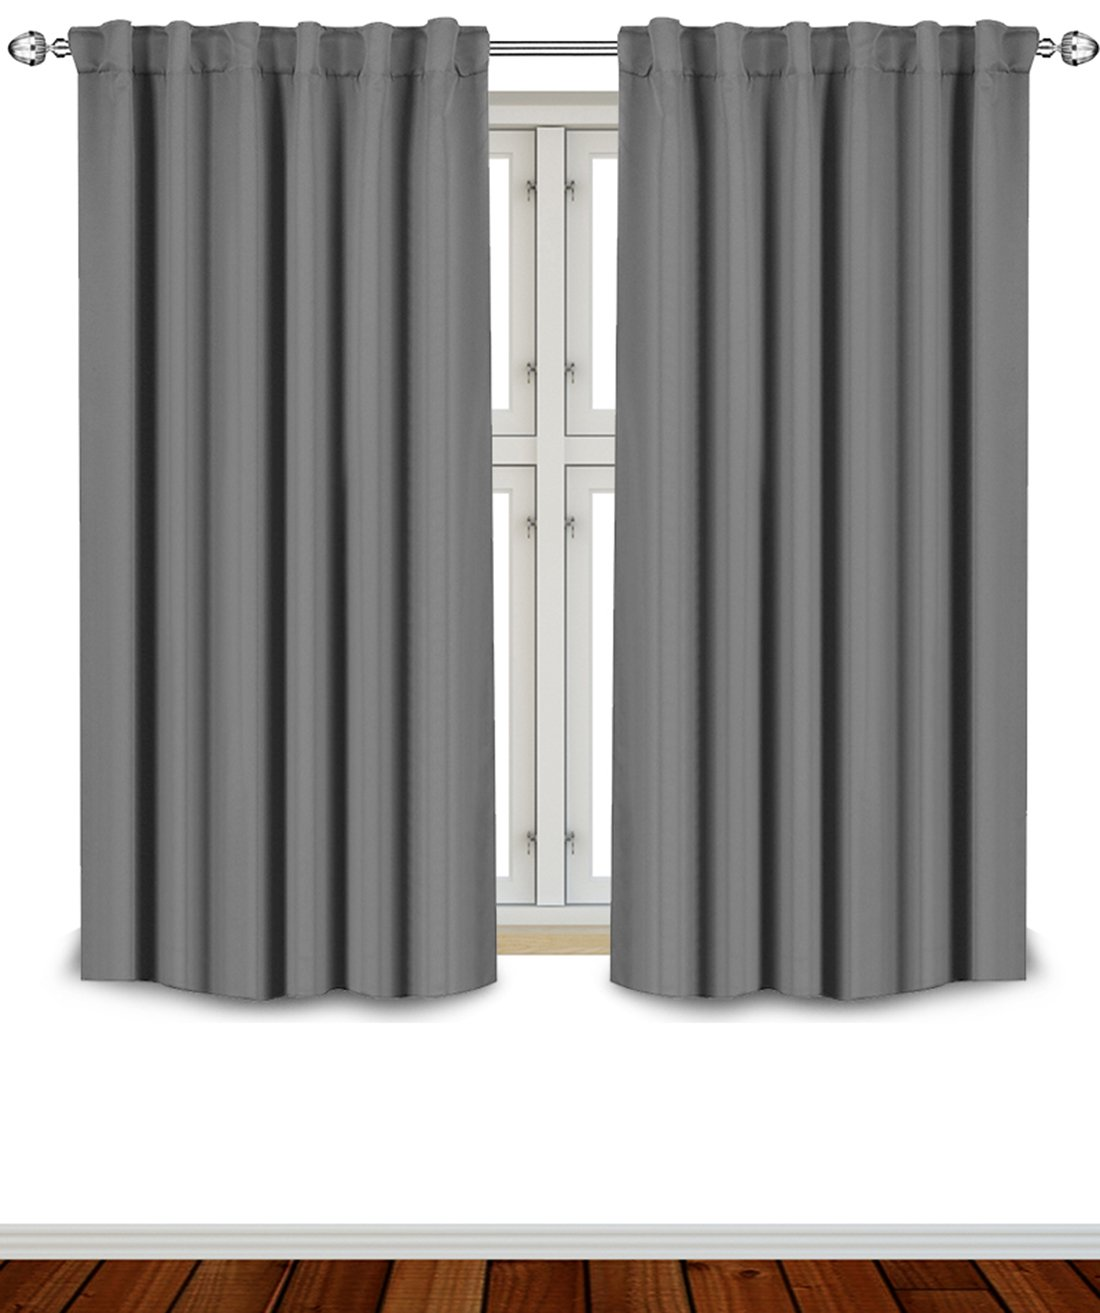 Emejing Grey Blackout Curtains Contemporary - Design Ideas 2017 ...